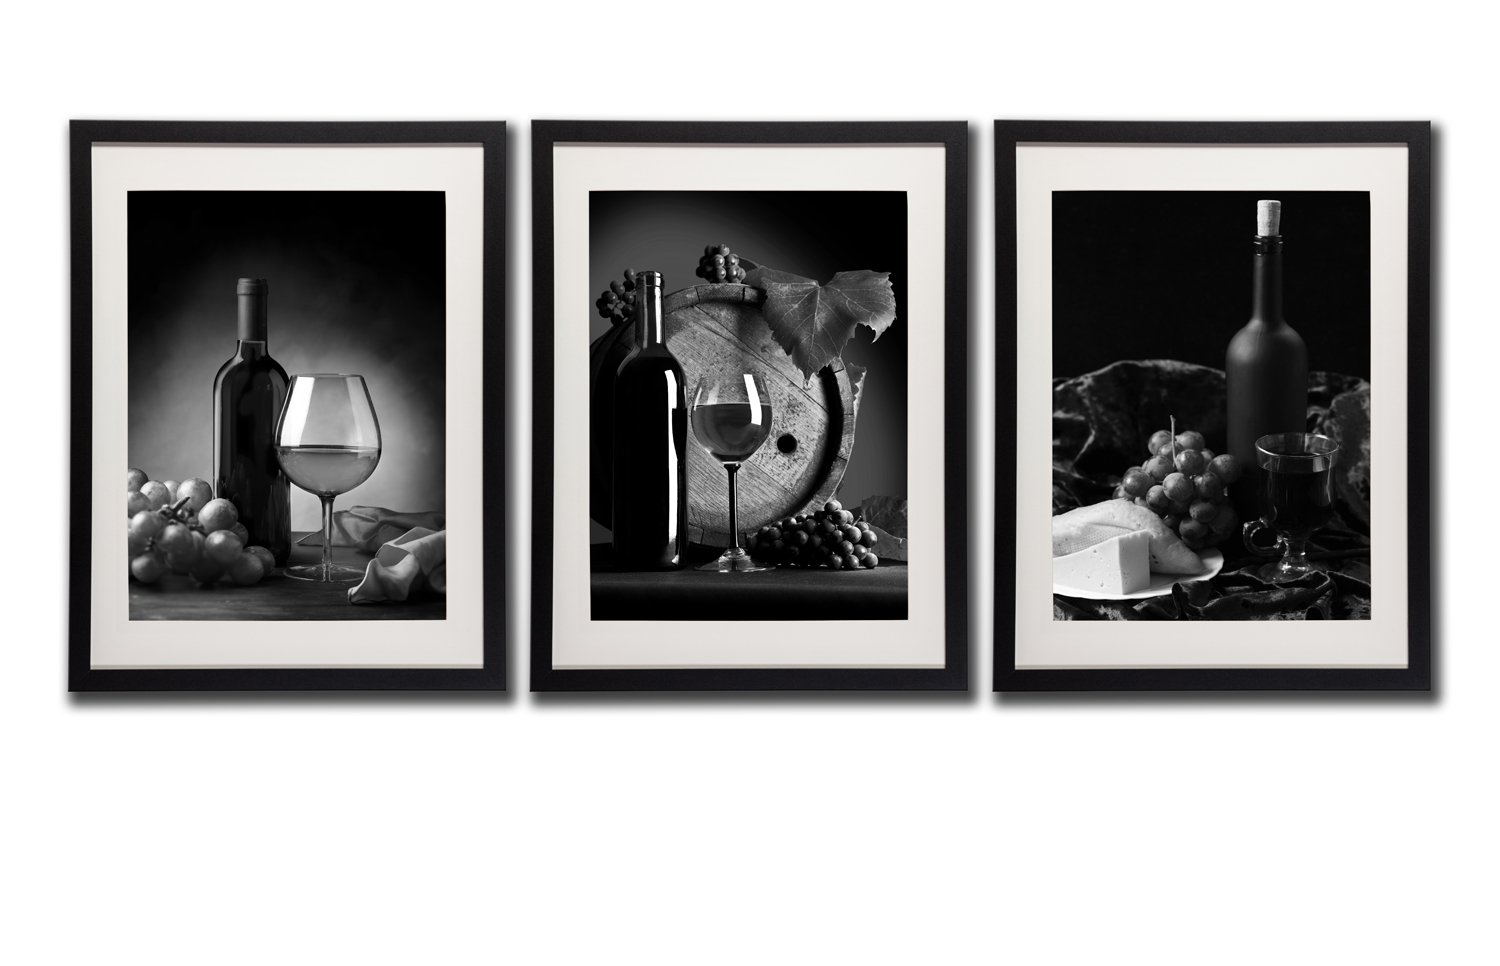 Red Wine Pictures Wall Art Decor Bottle Glass Grapes Fruit Canvas Print Painting Black And White Poster Printed On Canvas 3 Piece Black Frames White